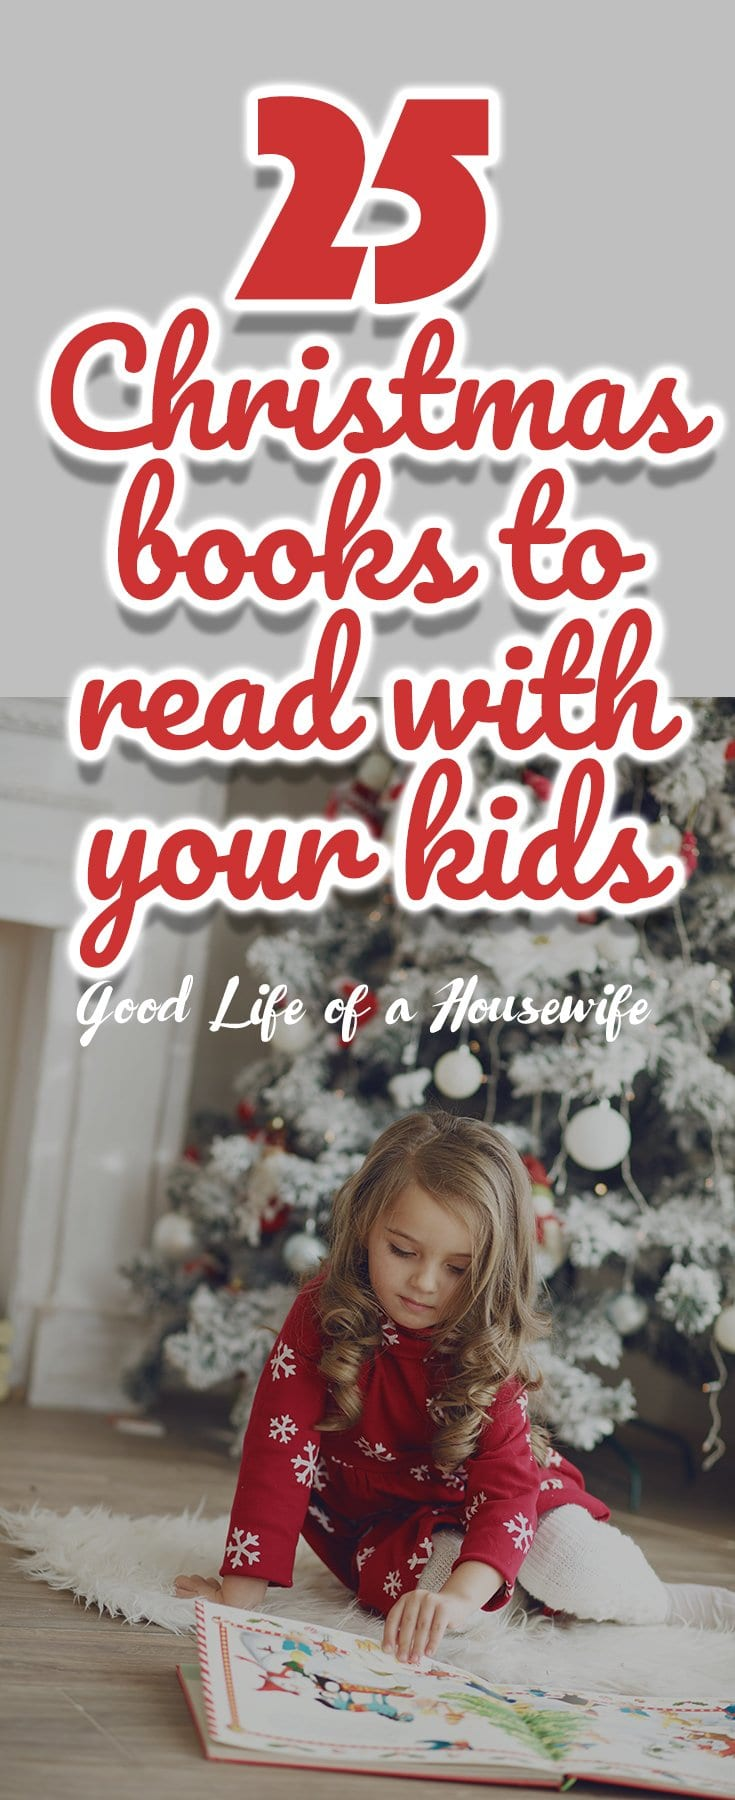 Looking for some Christmas favorites to share with your kids? Checkout these 25 Christmas Books to Read with your Kids #kidsChristmasBooks #ChristmasforKids #toddlerbooks